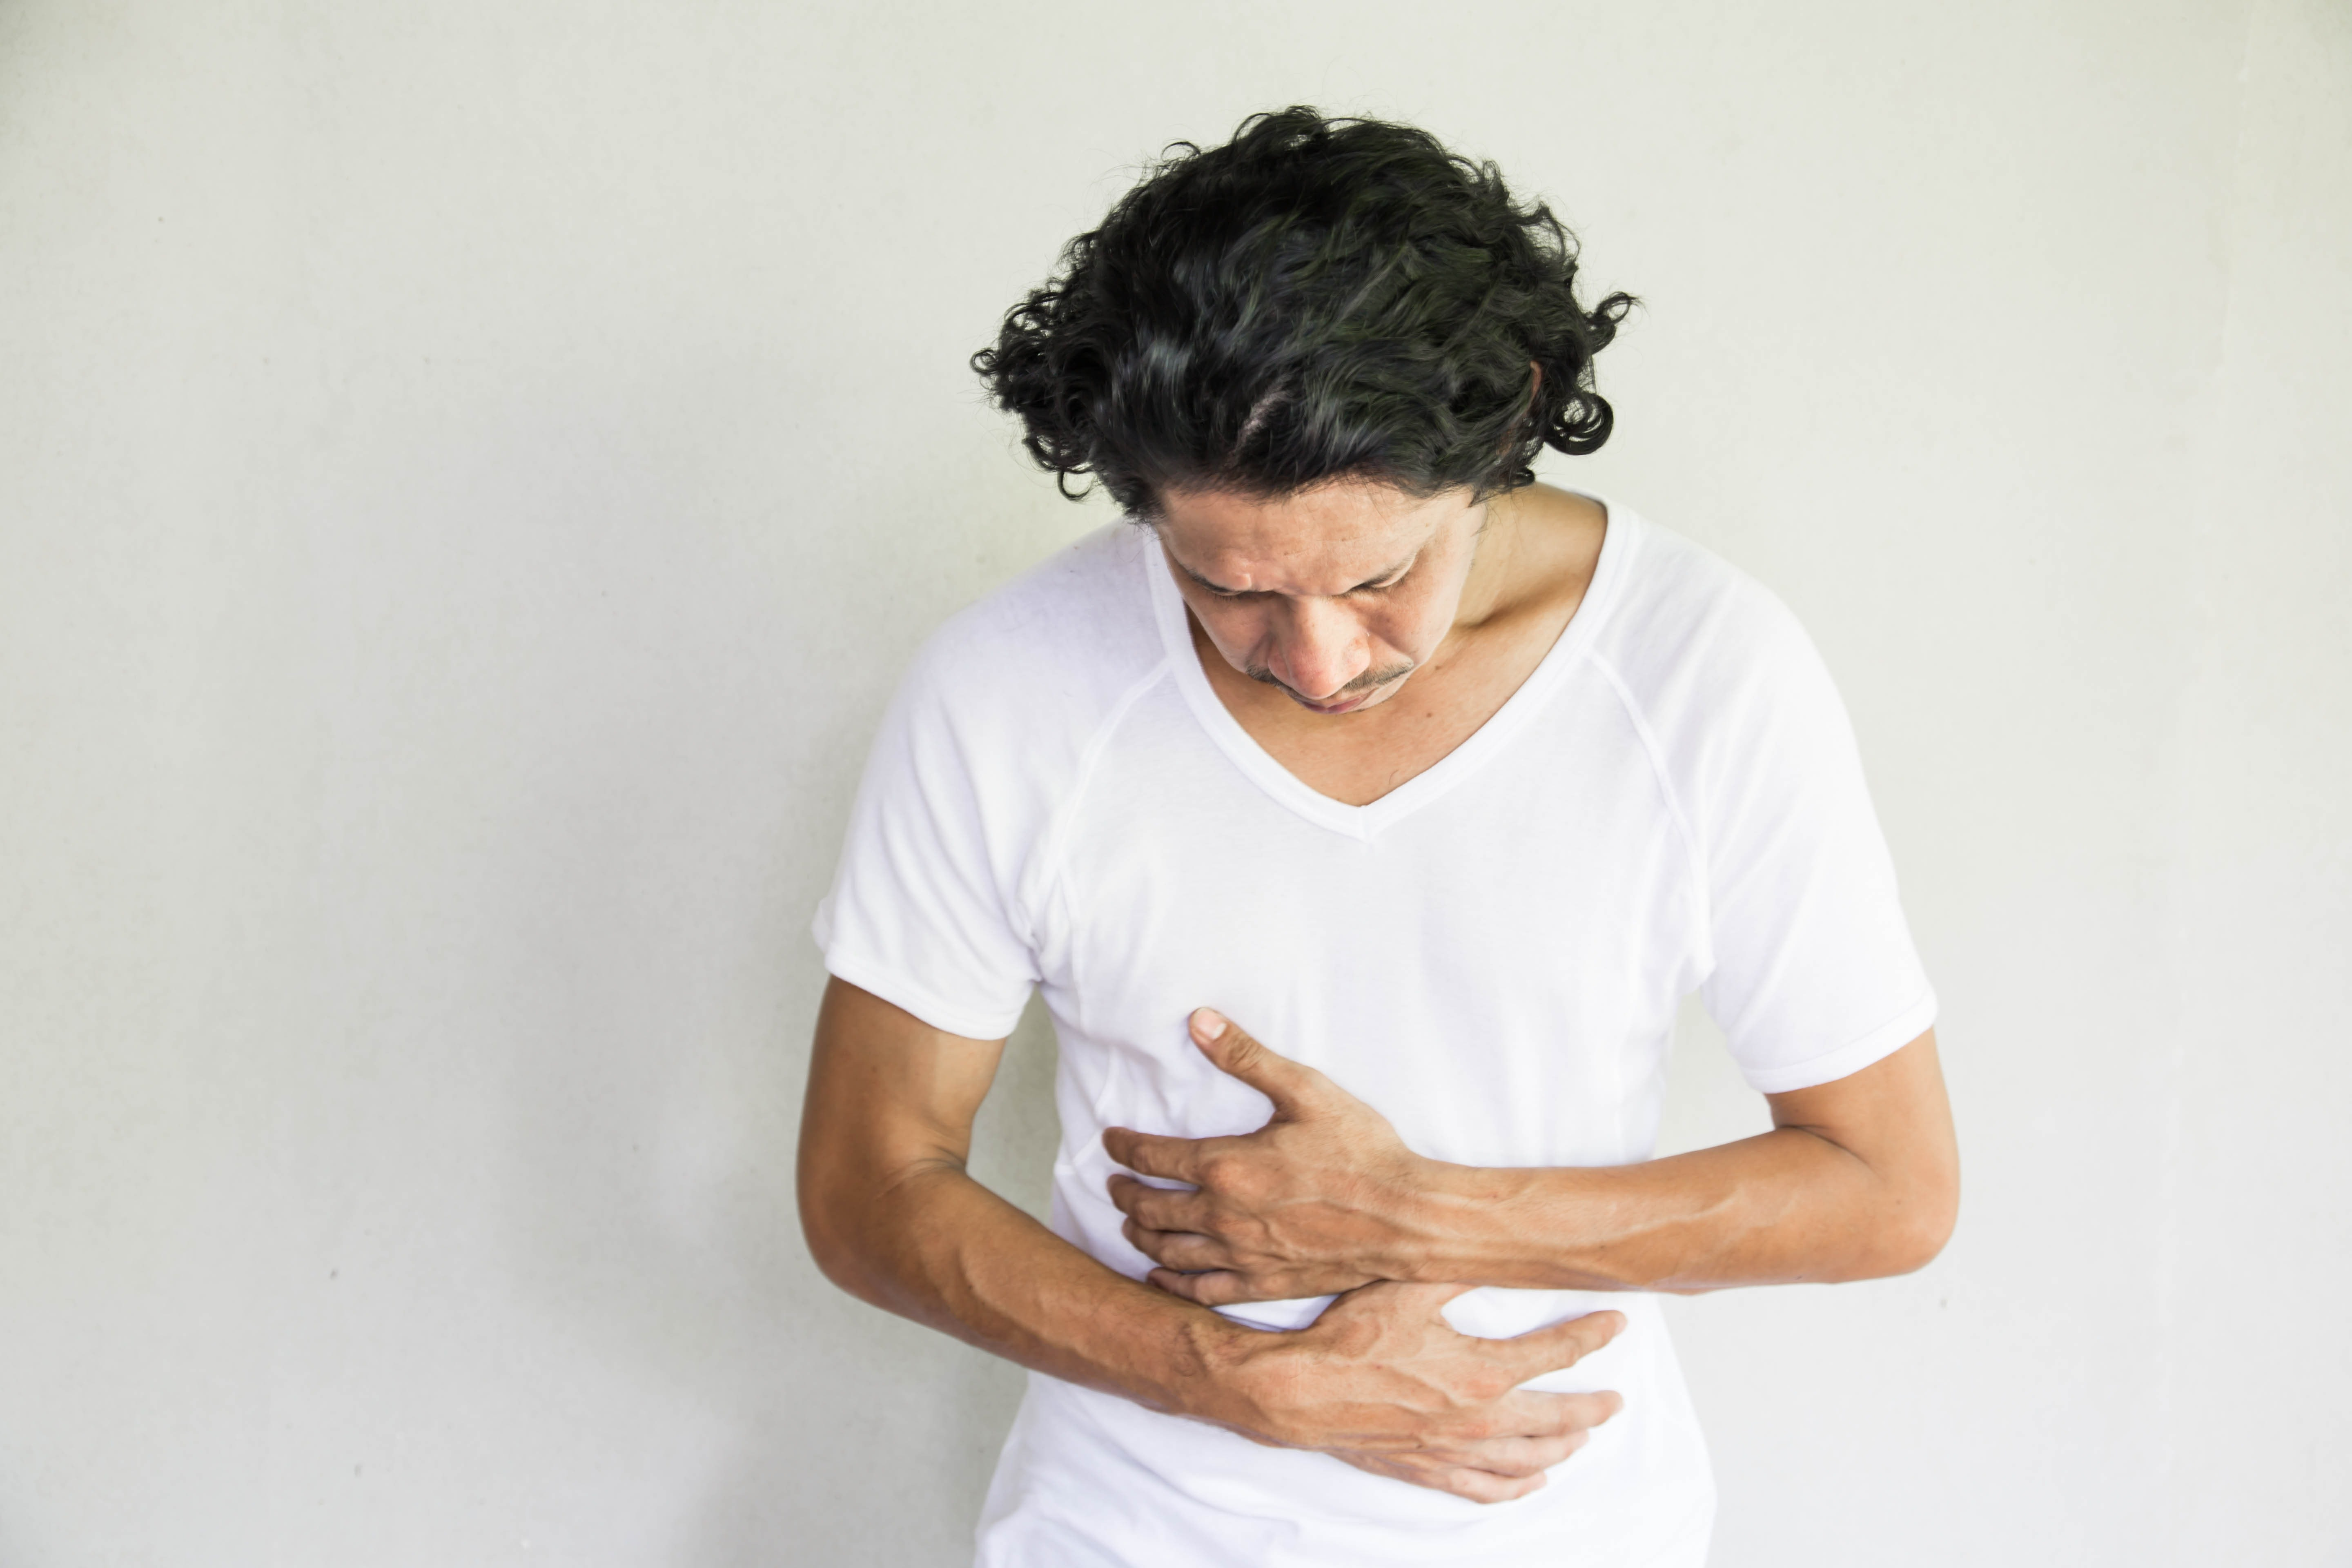 An image depicting a person suffering from gallstones symptoms